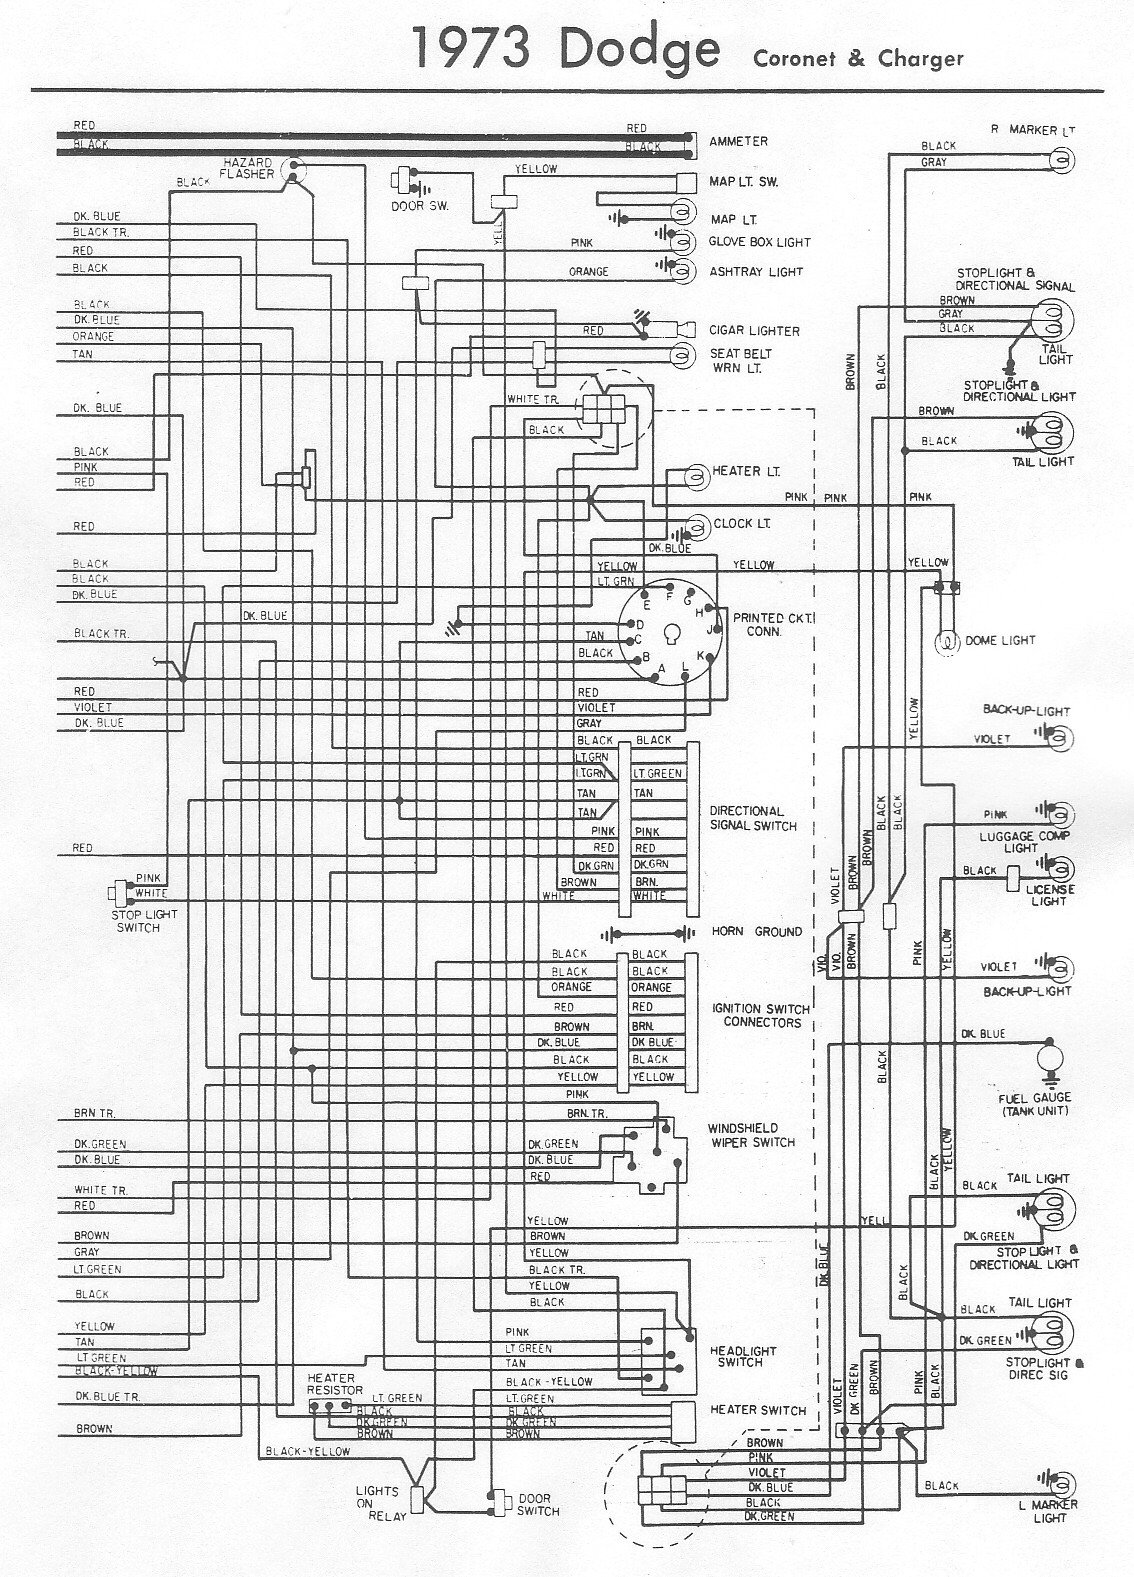 Diagram 73 Roadrunner Wiring Diagram Full Version Hd Quality Wiring Diagram Findiagramx18 Osteriadamariano It